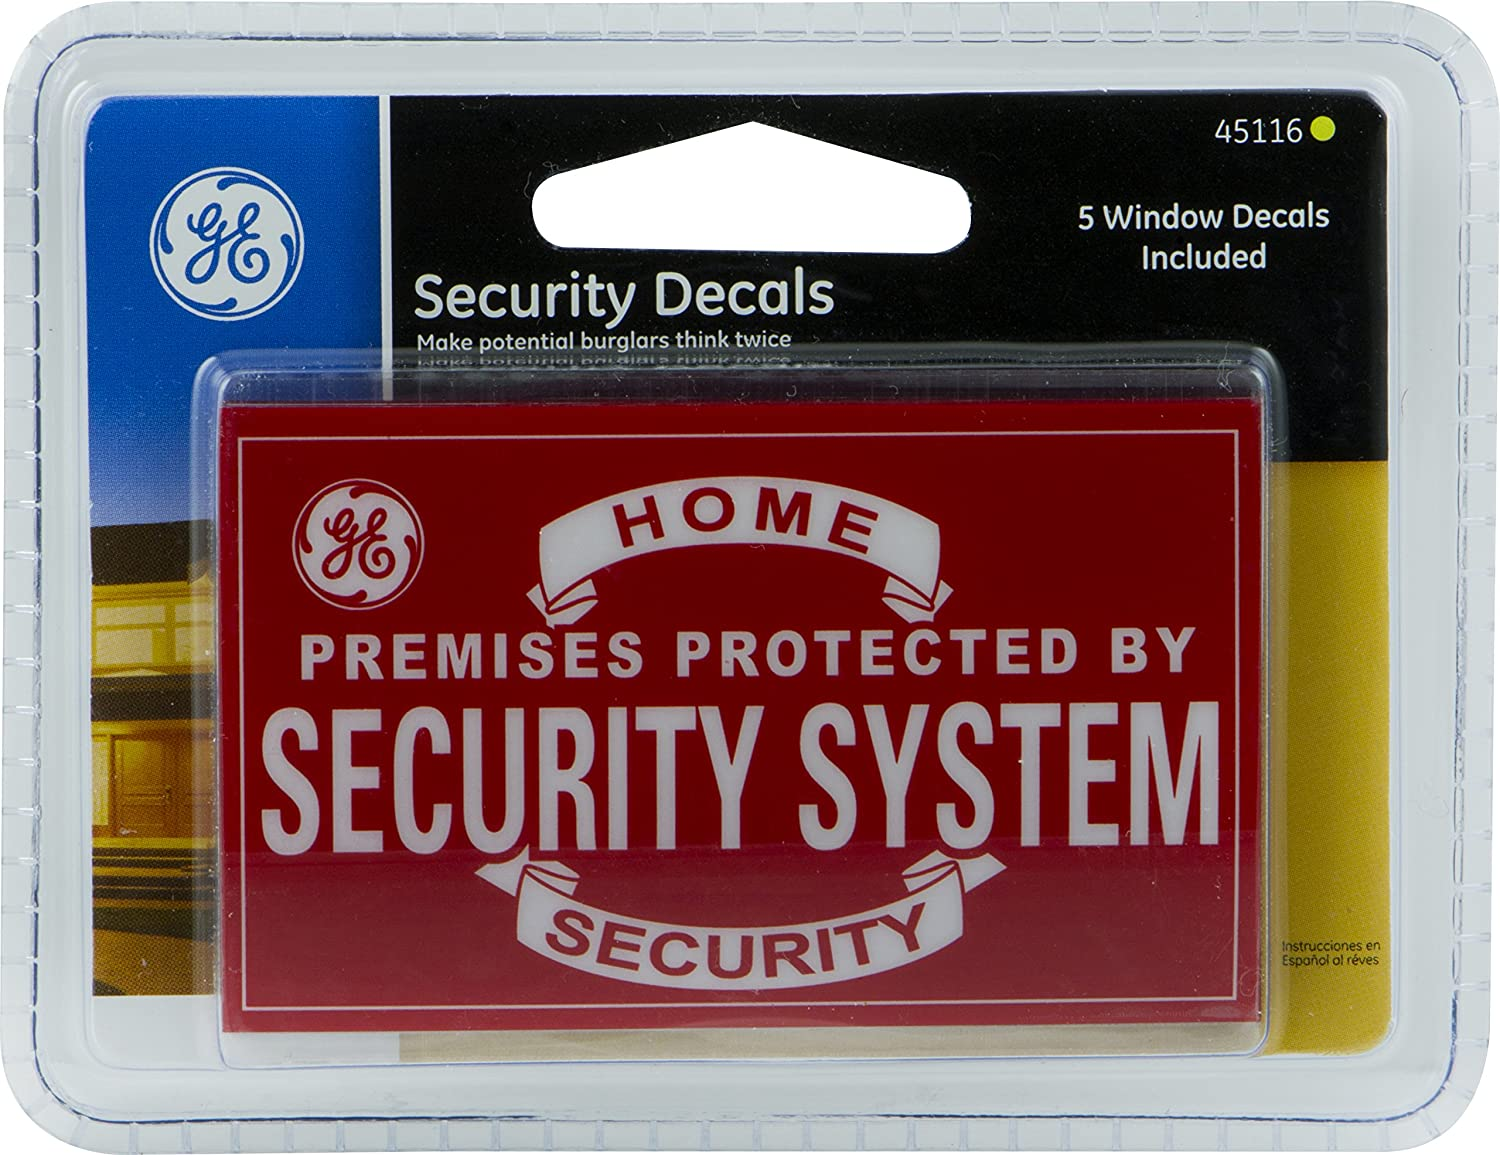 GE Security Decals, (5 Pack) Home Protection Warning, Premises Protected by Security System, Peel and Stick Weather Resistant, Resists Fading, DIY Home Protection, Perfect for Home & Apartment 45116